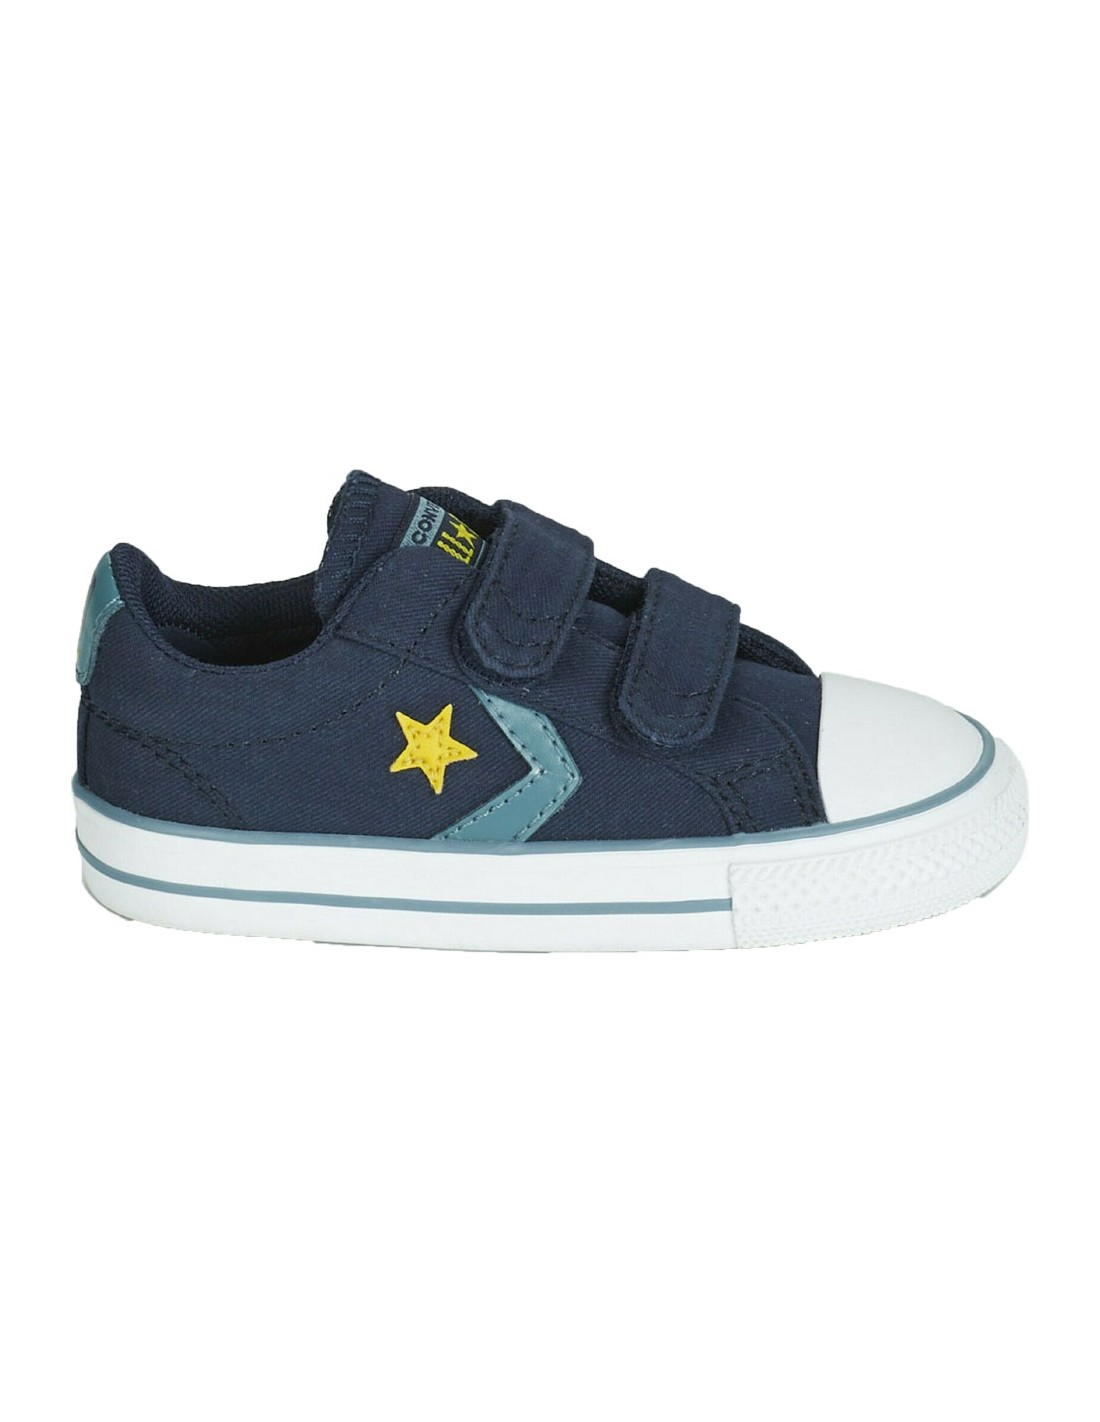 2converse star player blu